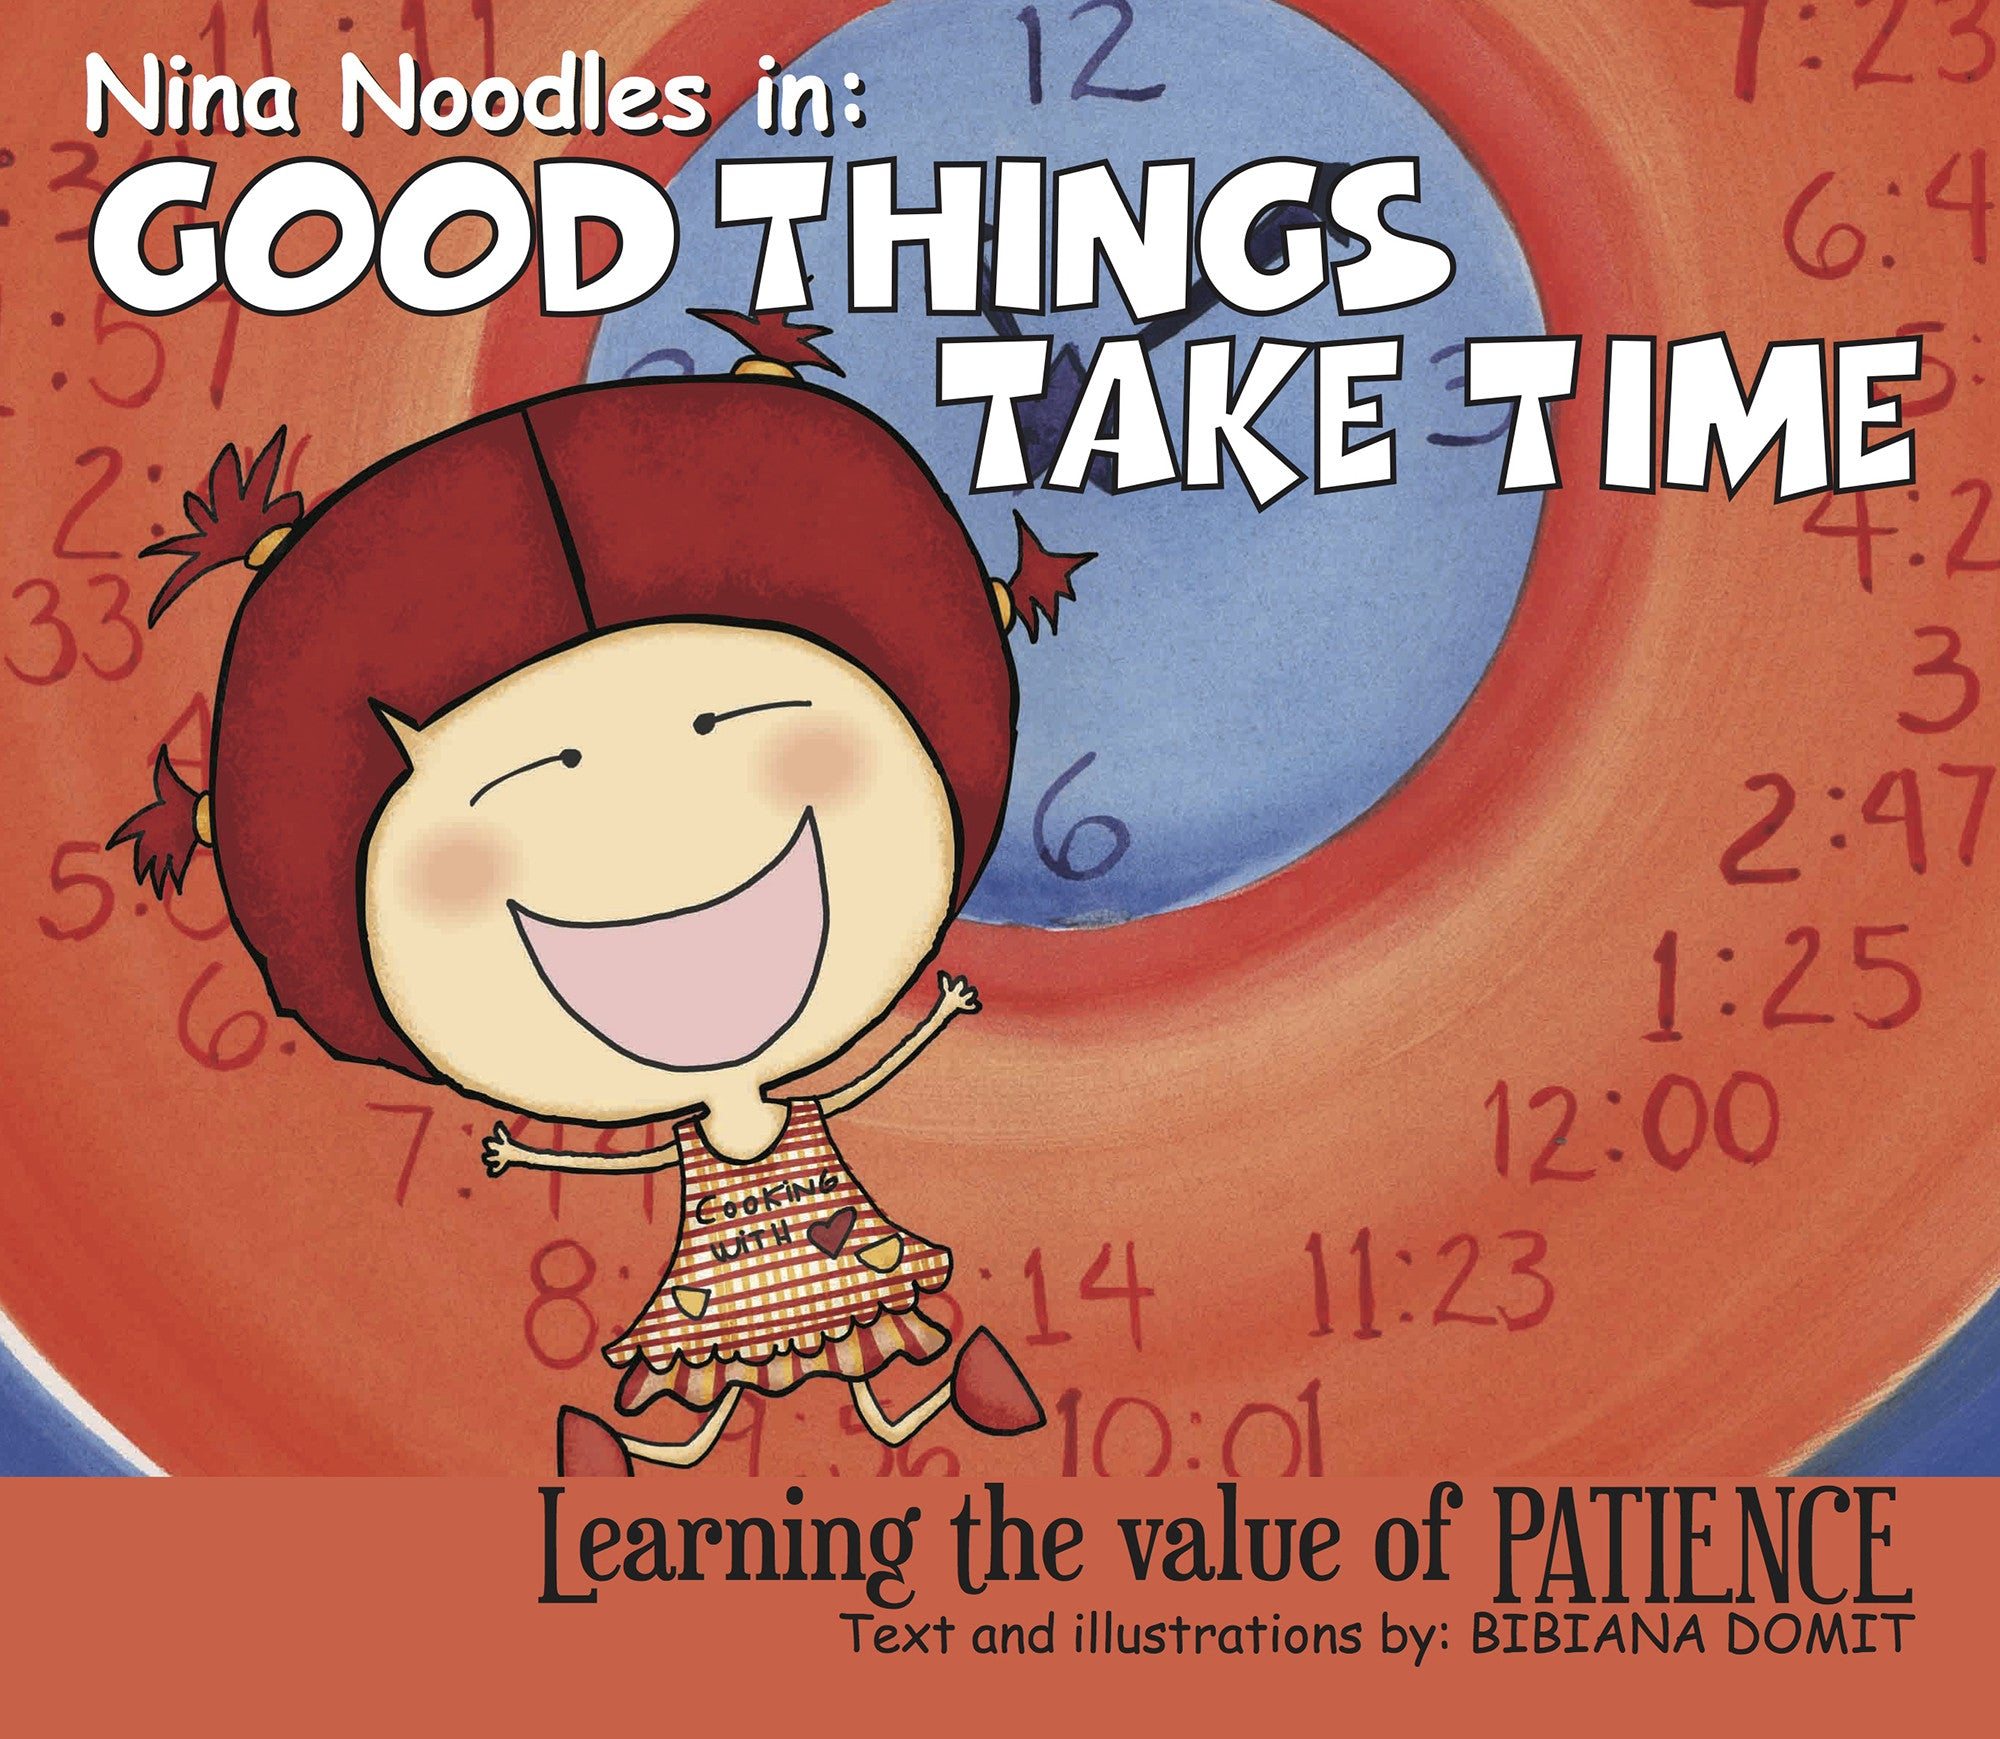 The Tullys Children Books, Nina Noodles in Good Things Take Time